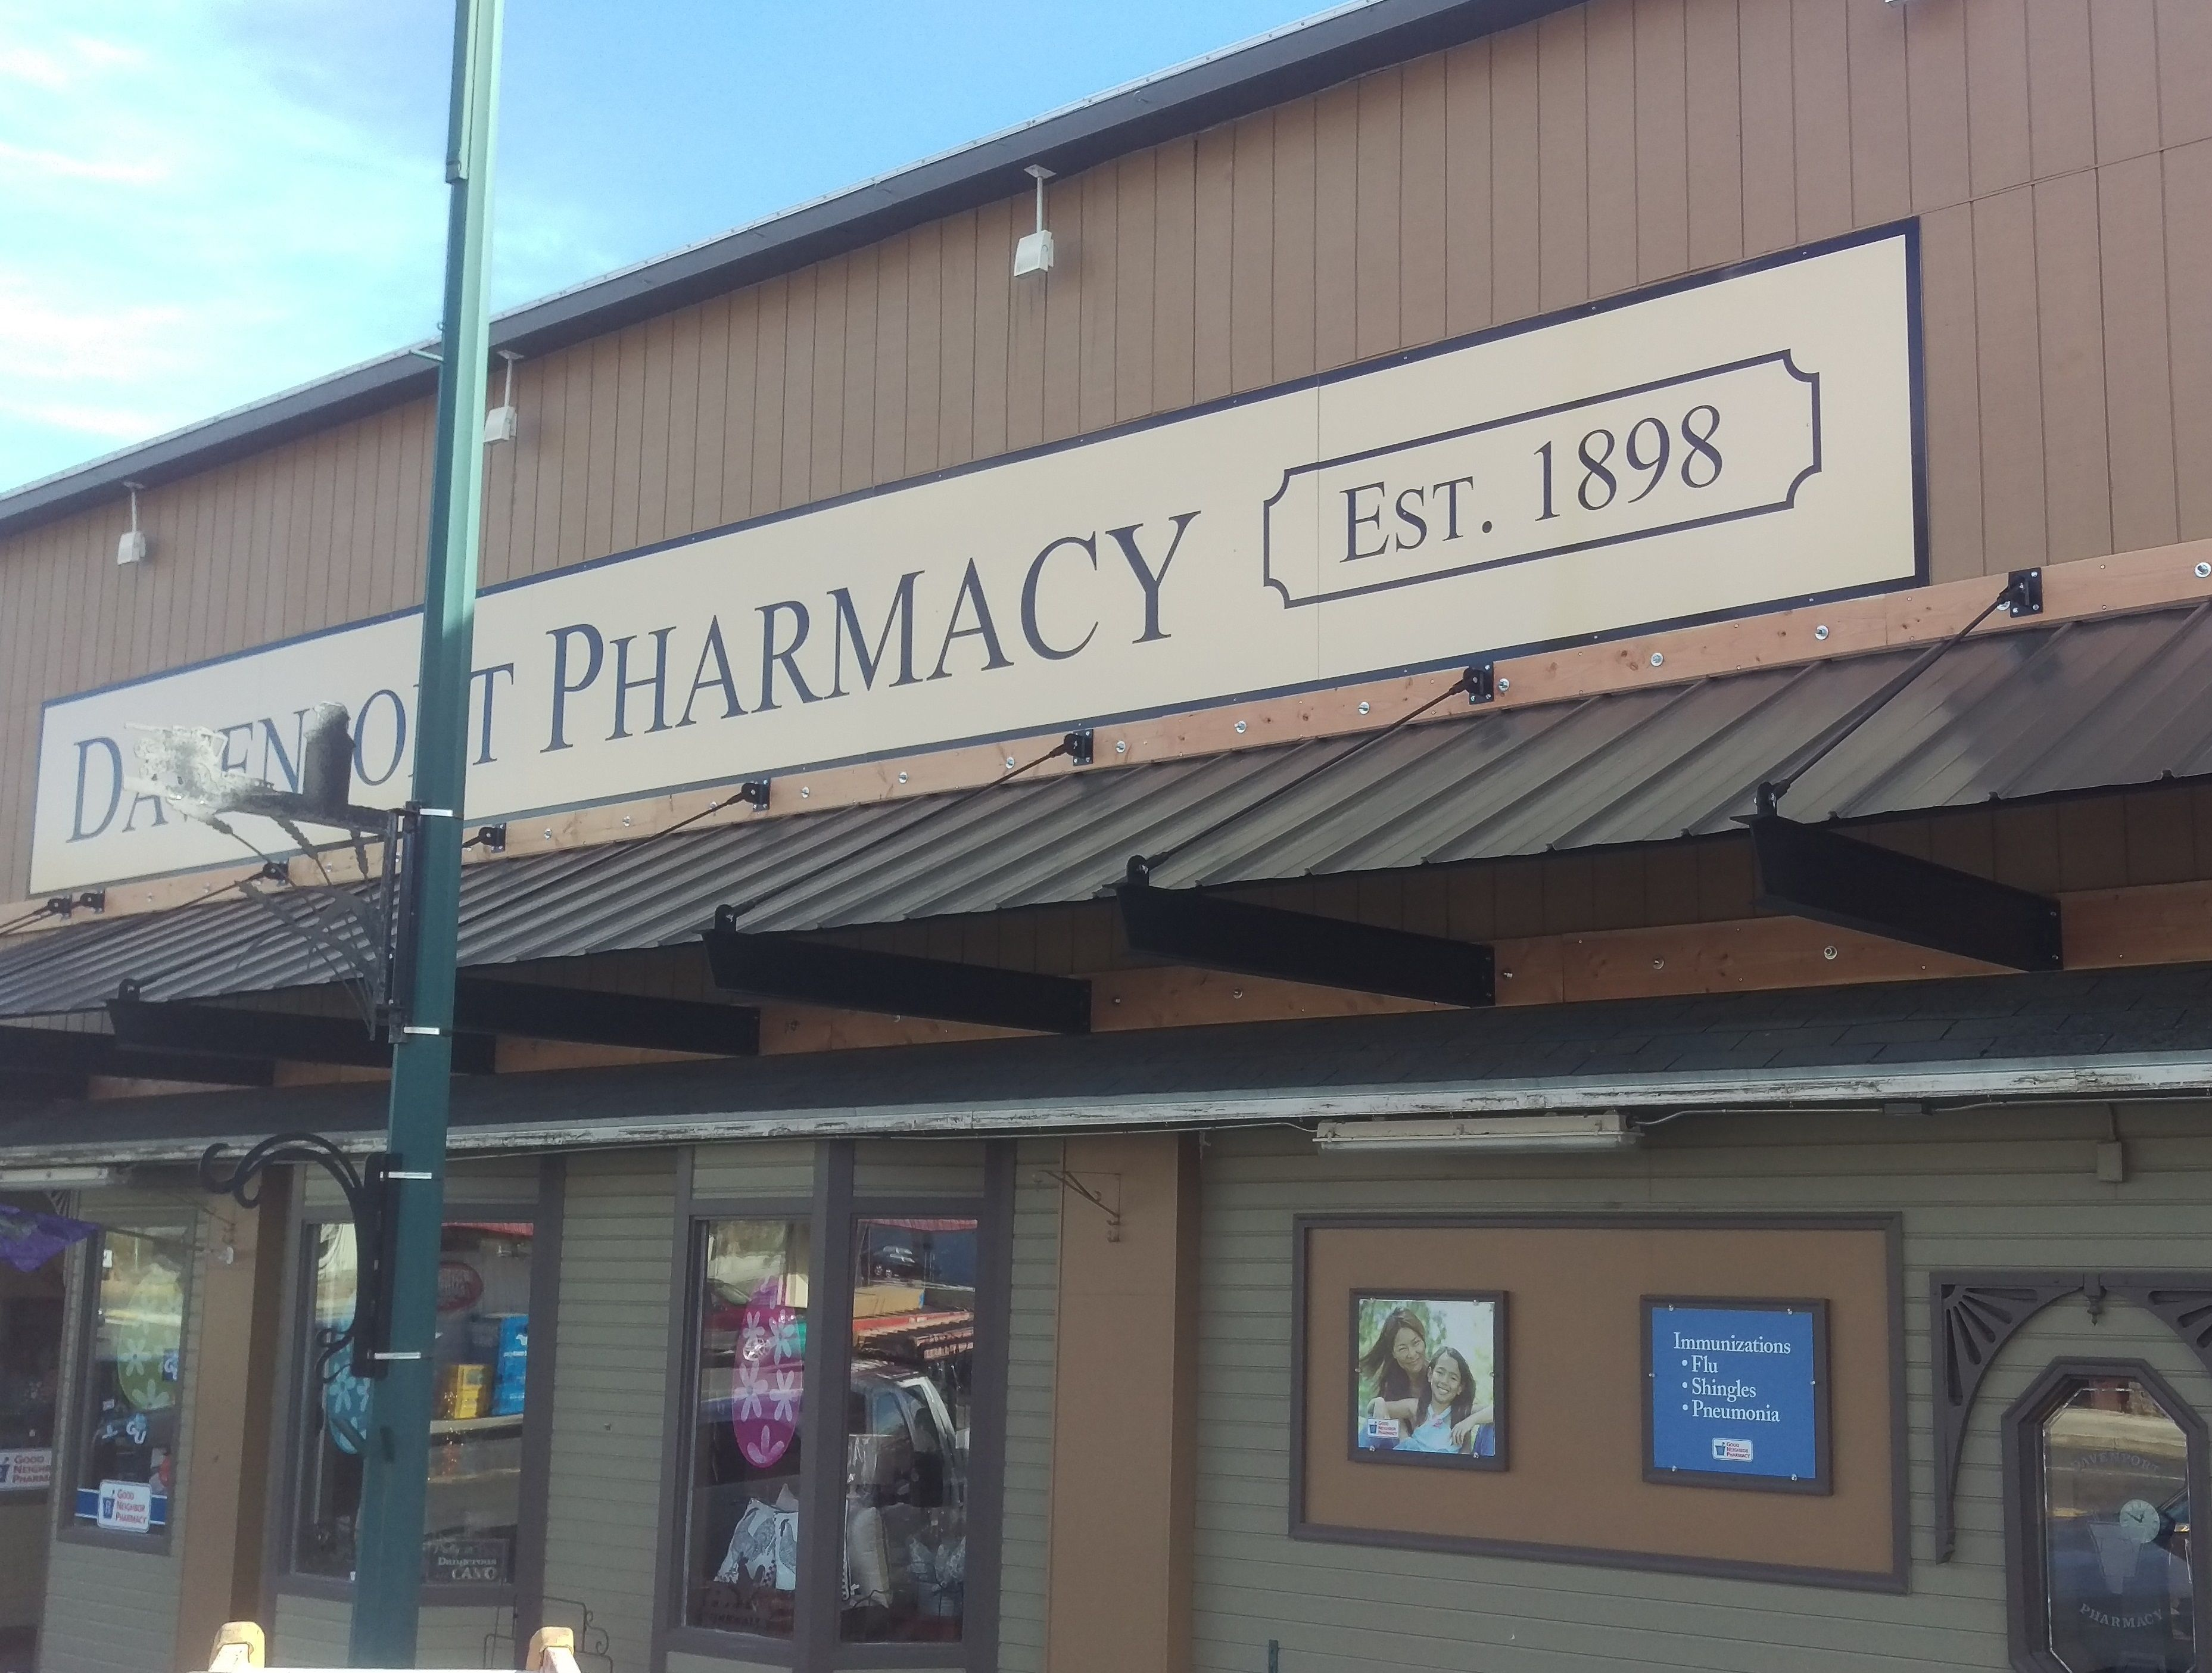 We Recently Finished Building And Installing New Aluminum Canopies For The Davenport Pharmacy These Canopies Were Built With St Pharmacy Canopy Frame